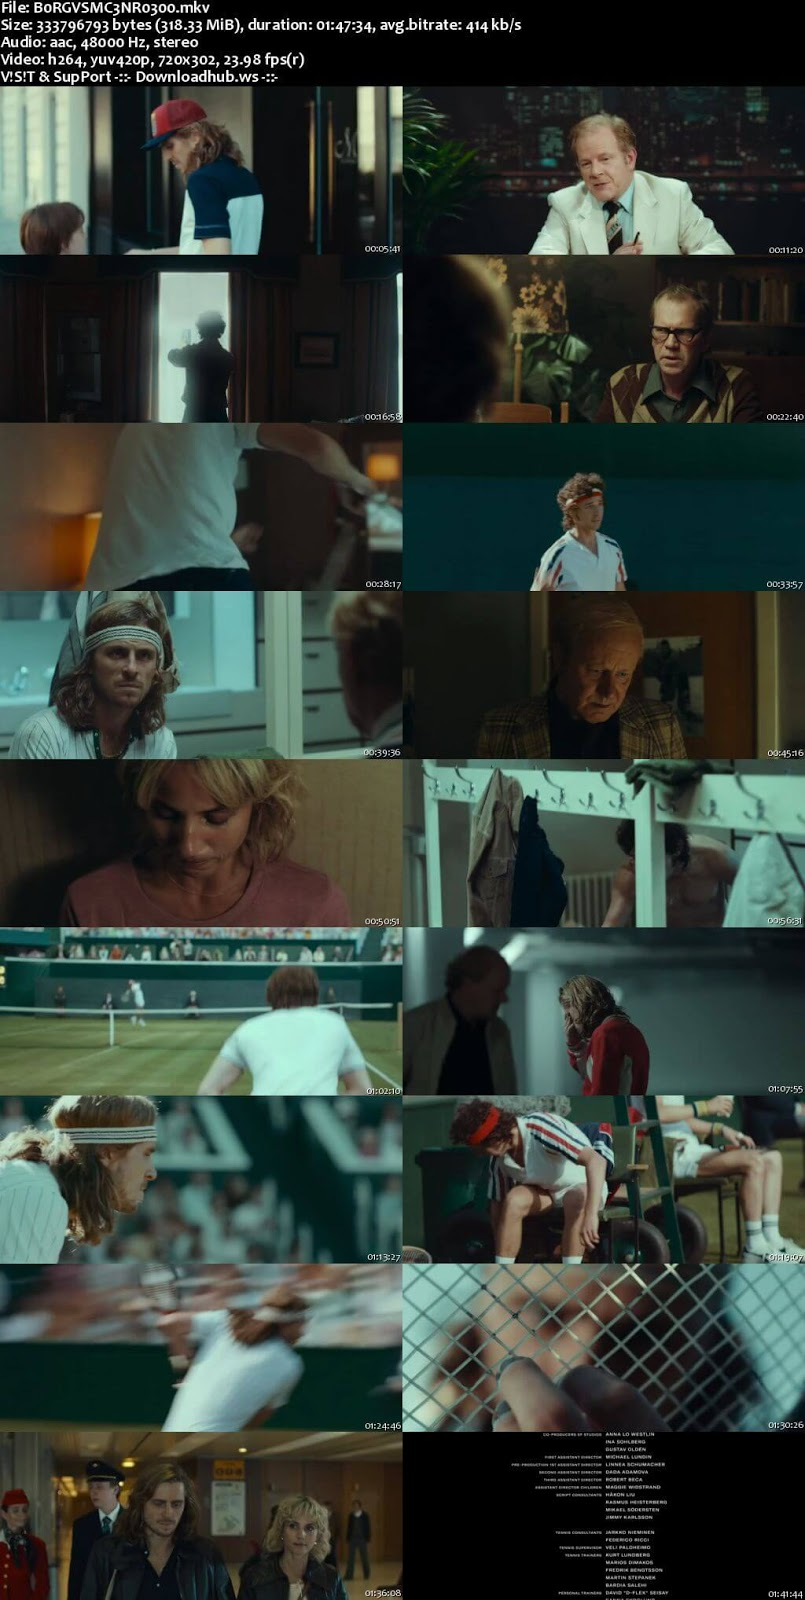 Borg vs. McEnroe 2017 English 480p Web-DL